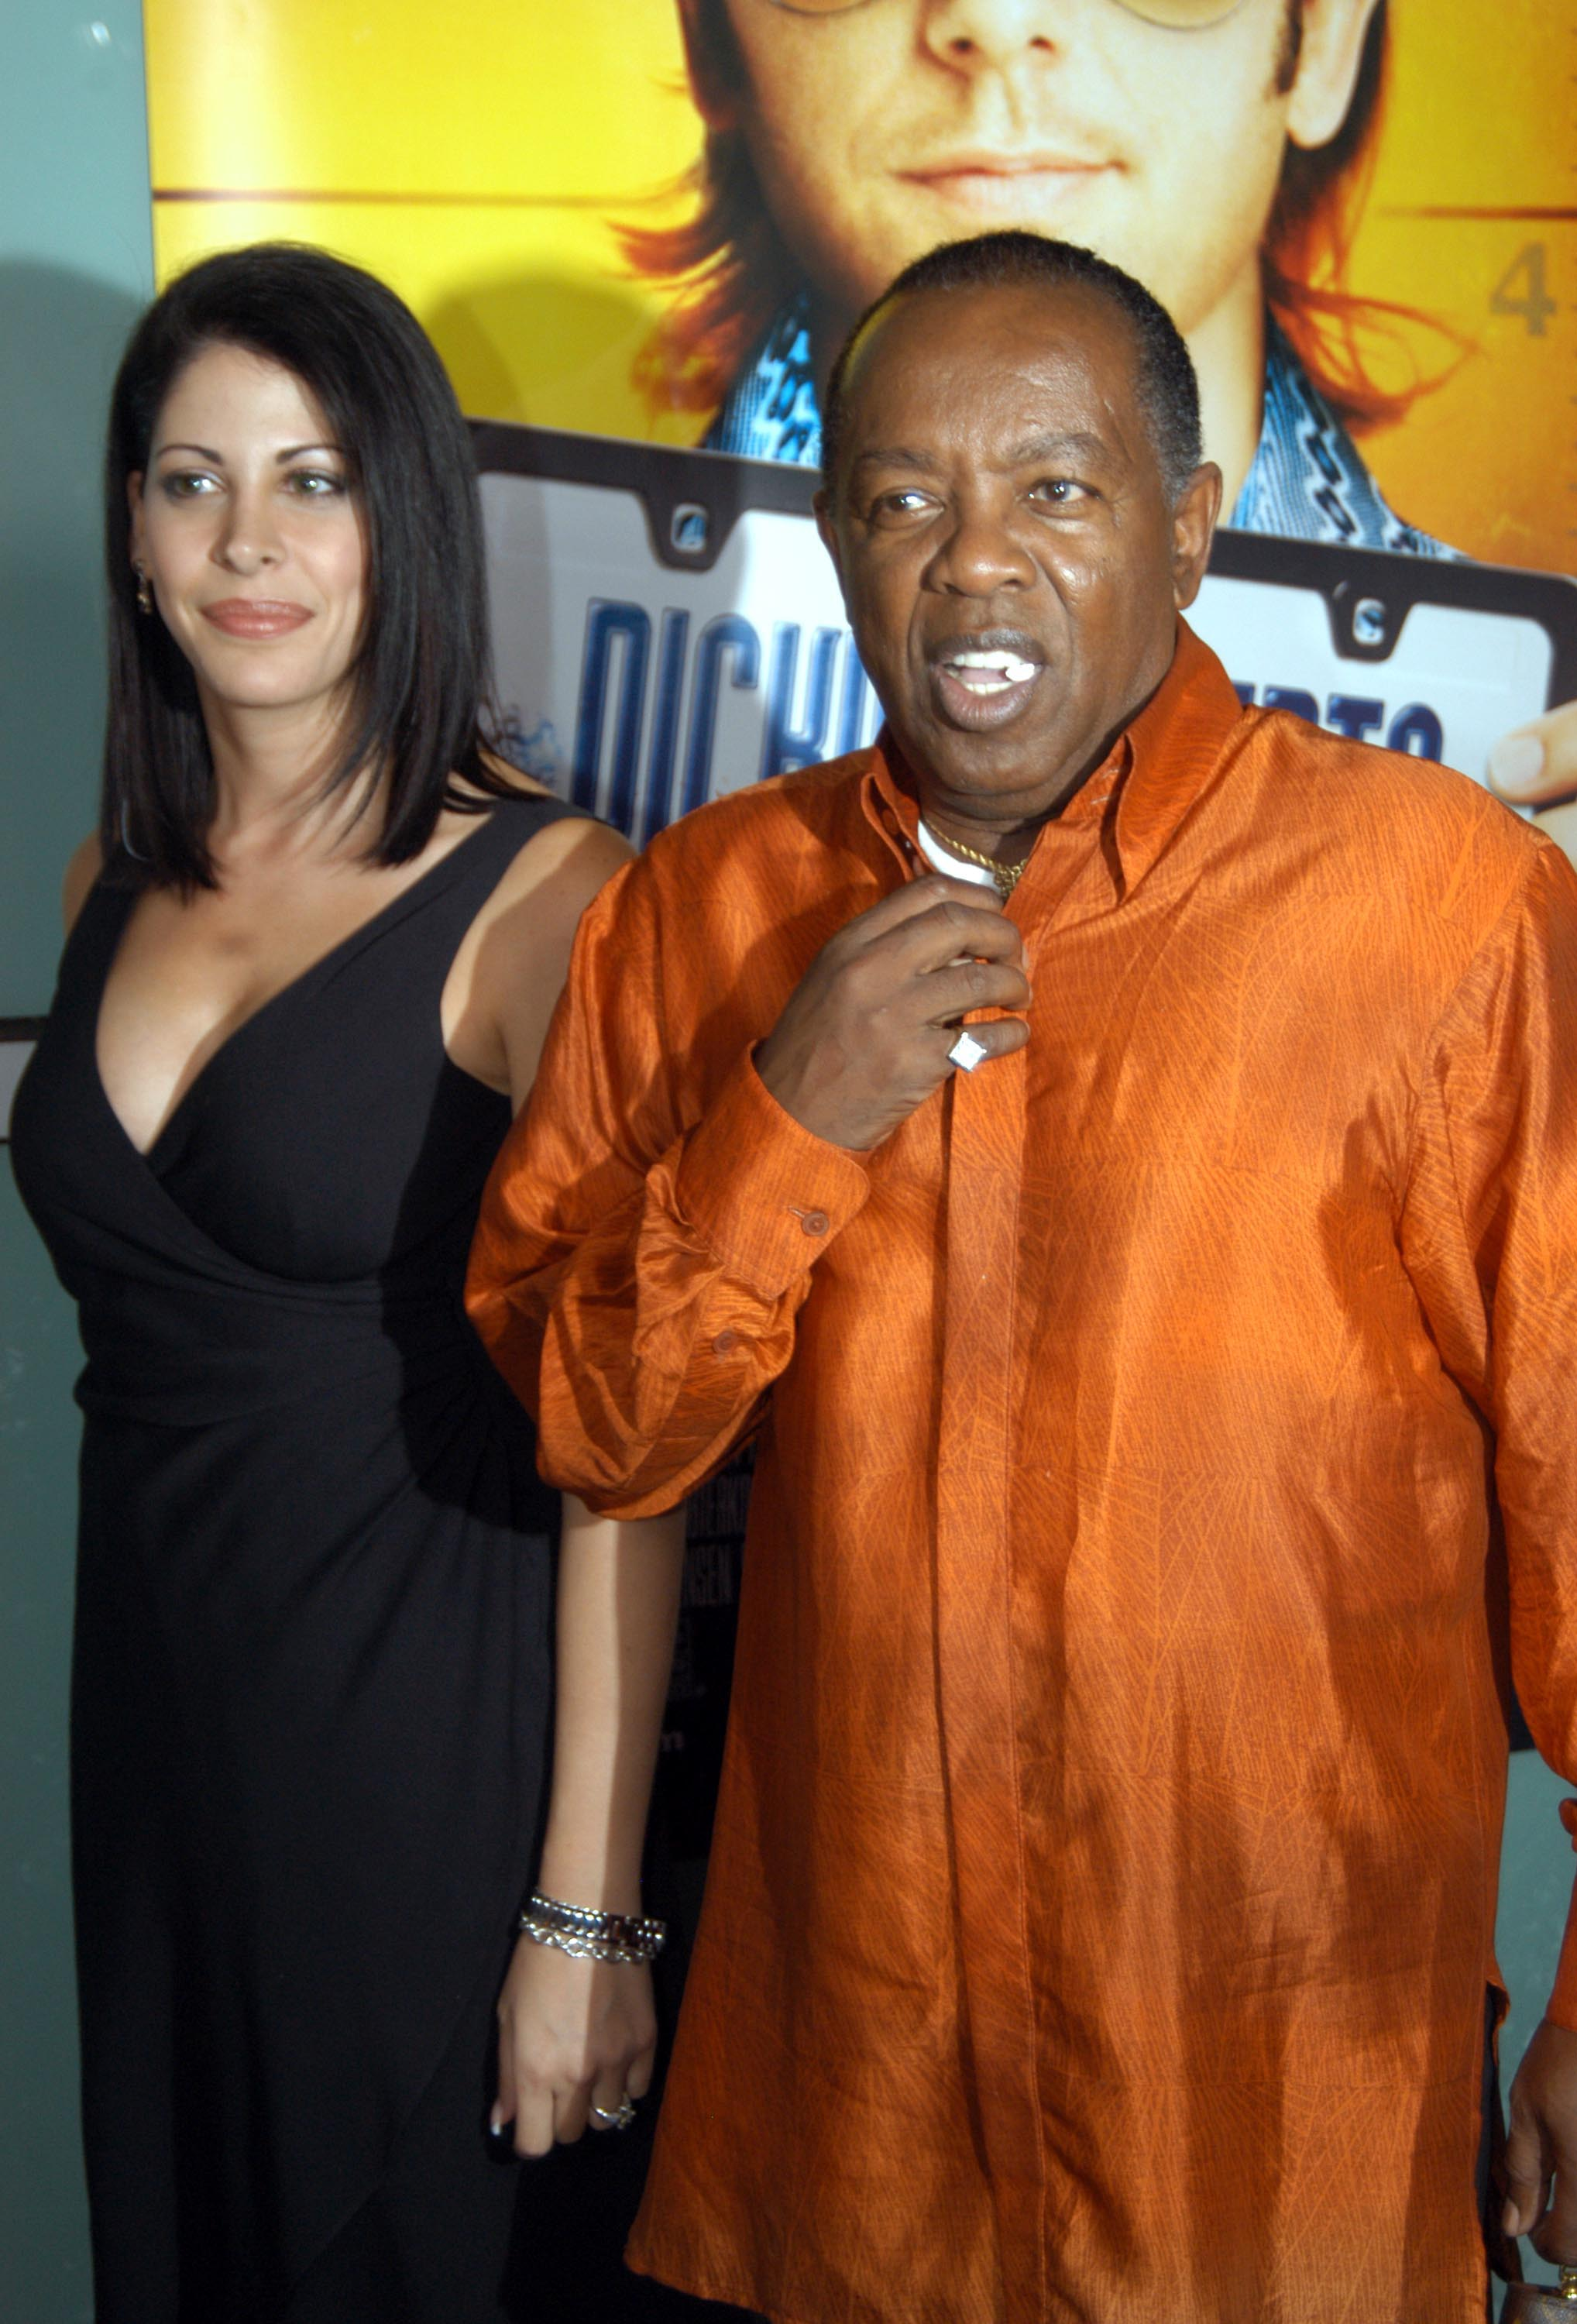 Lou Rawls during World Premiere of Dickie Roberts: Former Child Star at Cinerama Dome in Hollywood, California on September 3, 2003. | Photo: Getty Images